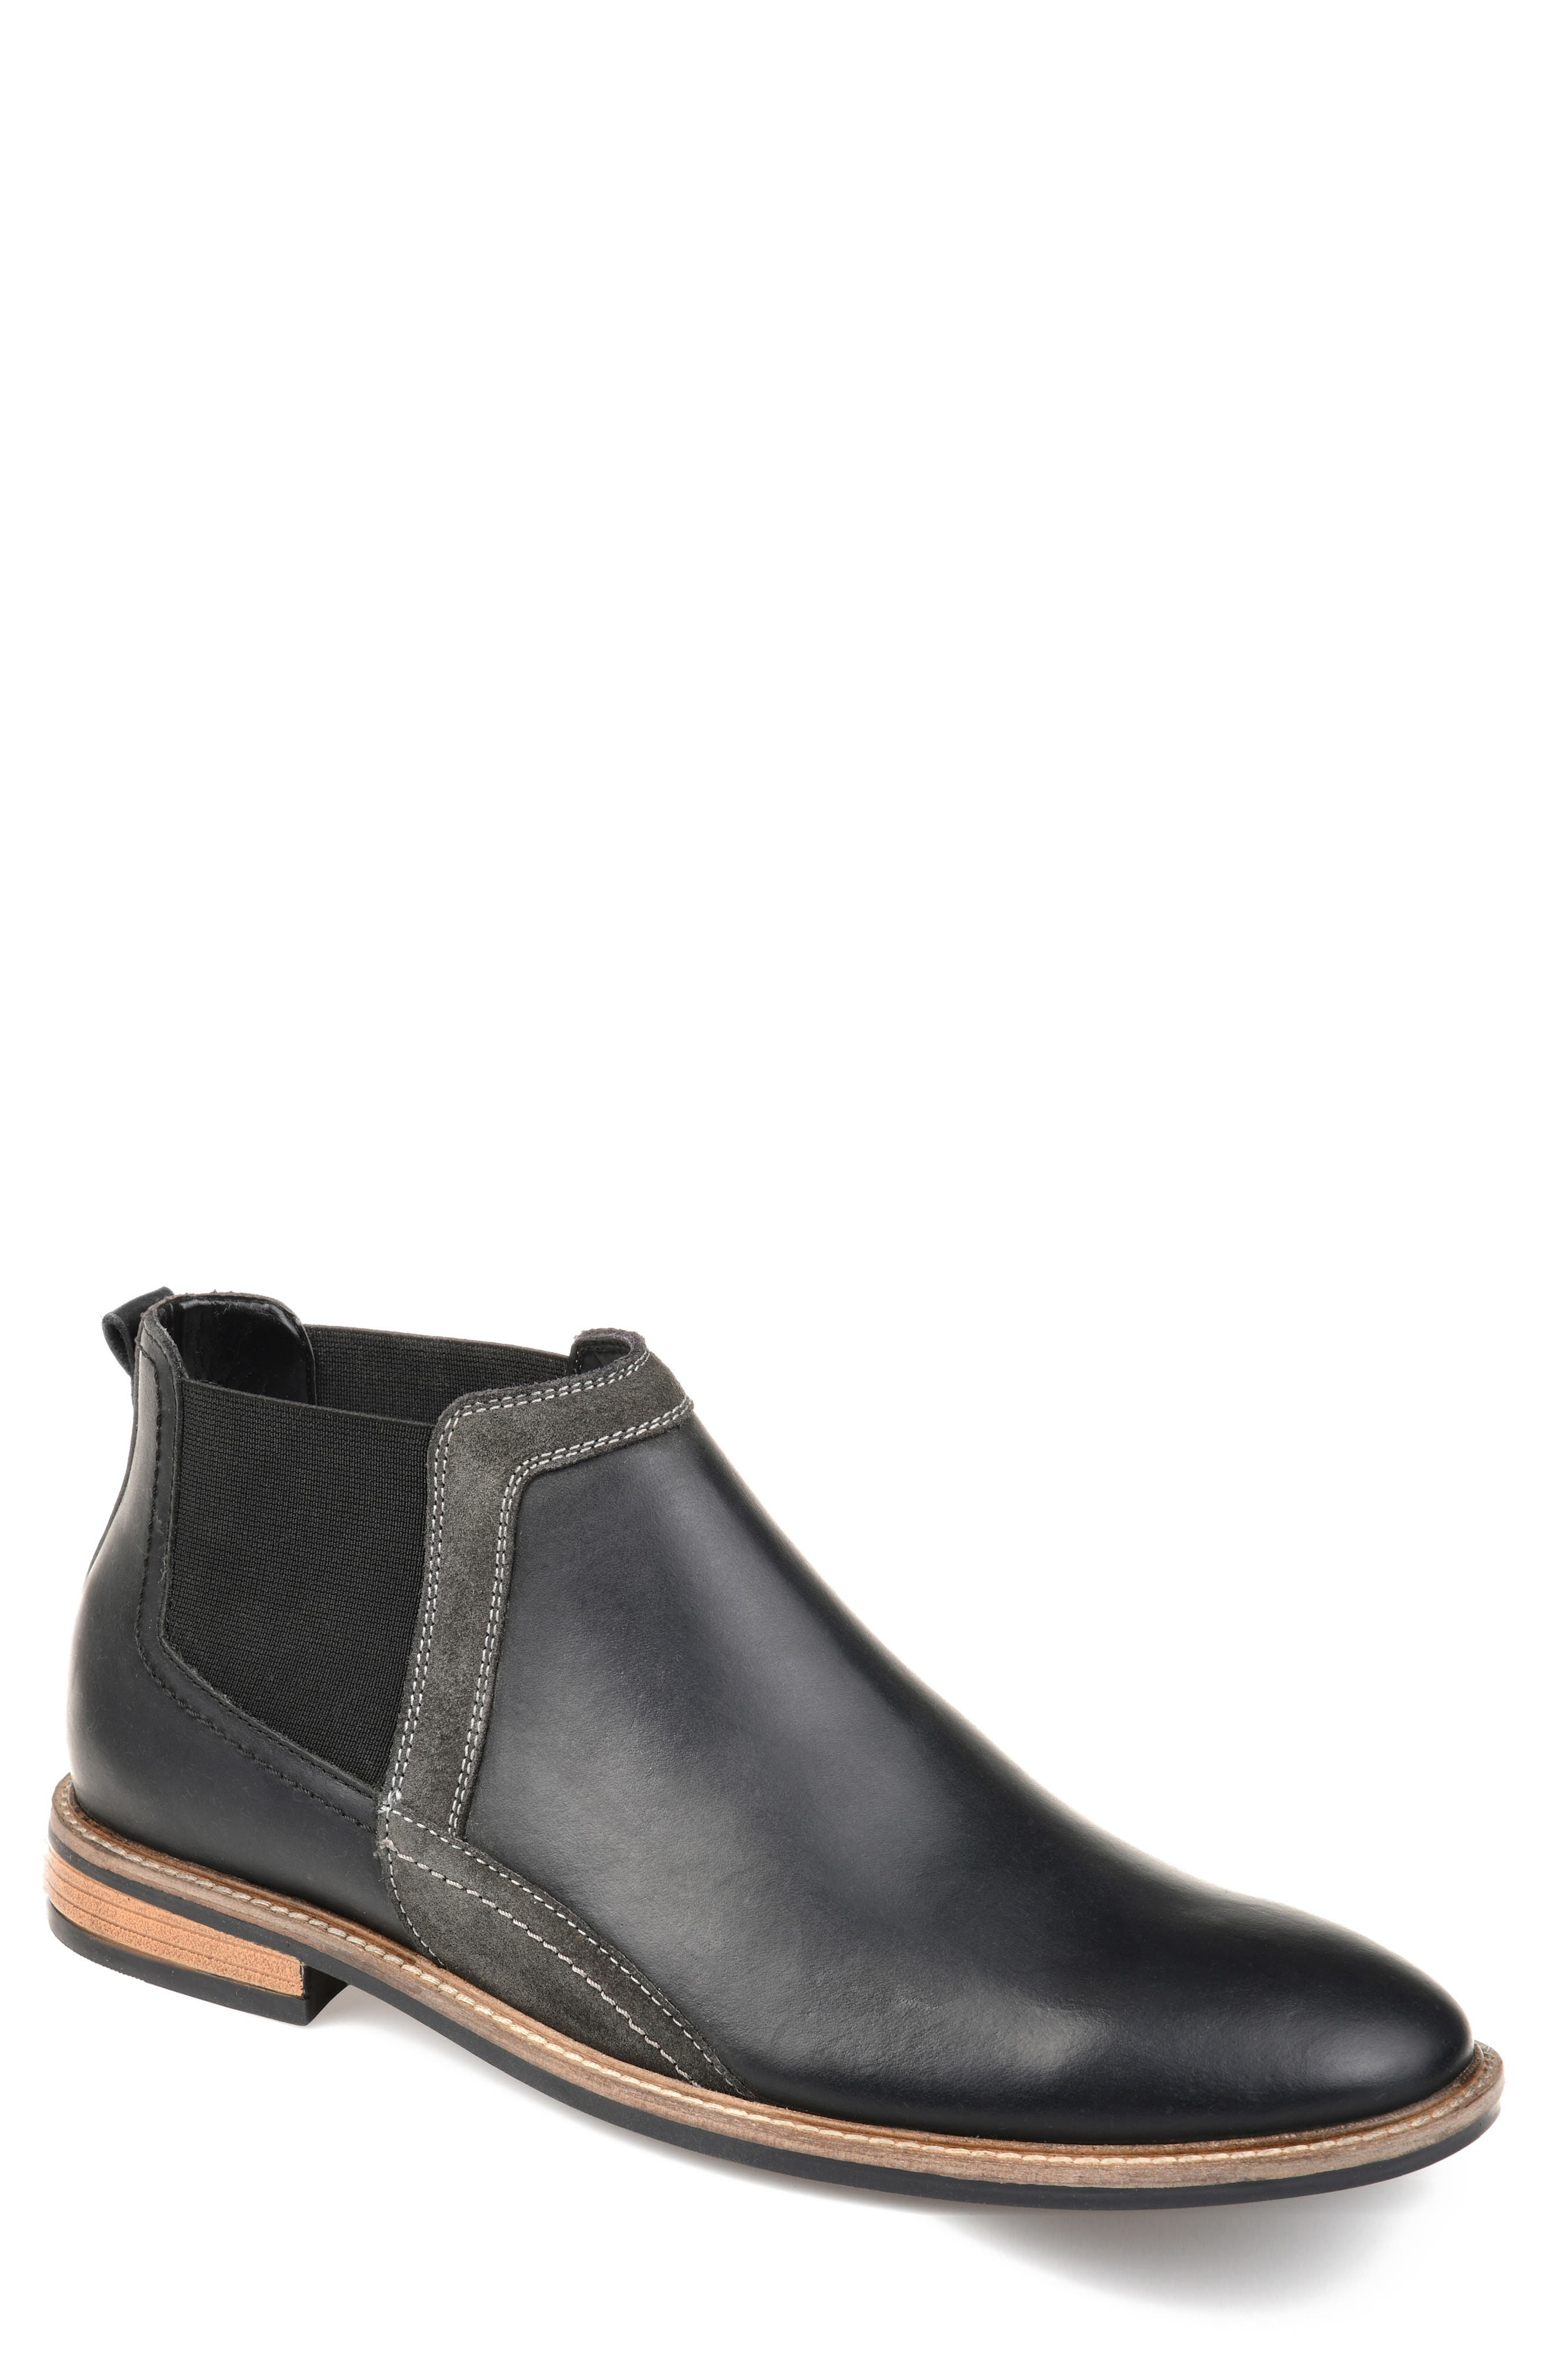 THOMAS AND VINE Beckham Chelsea Boot, Main, color, BLACK LEATHER